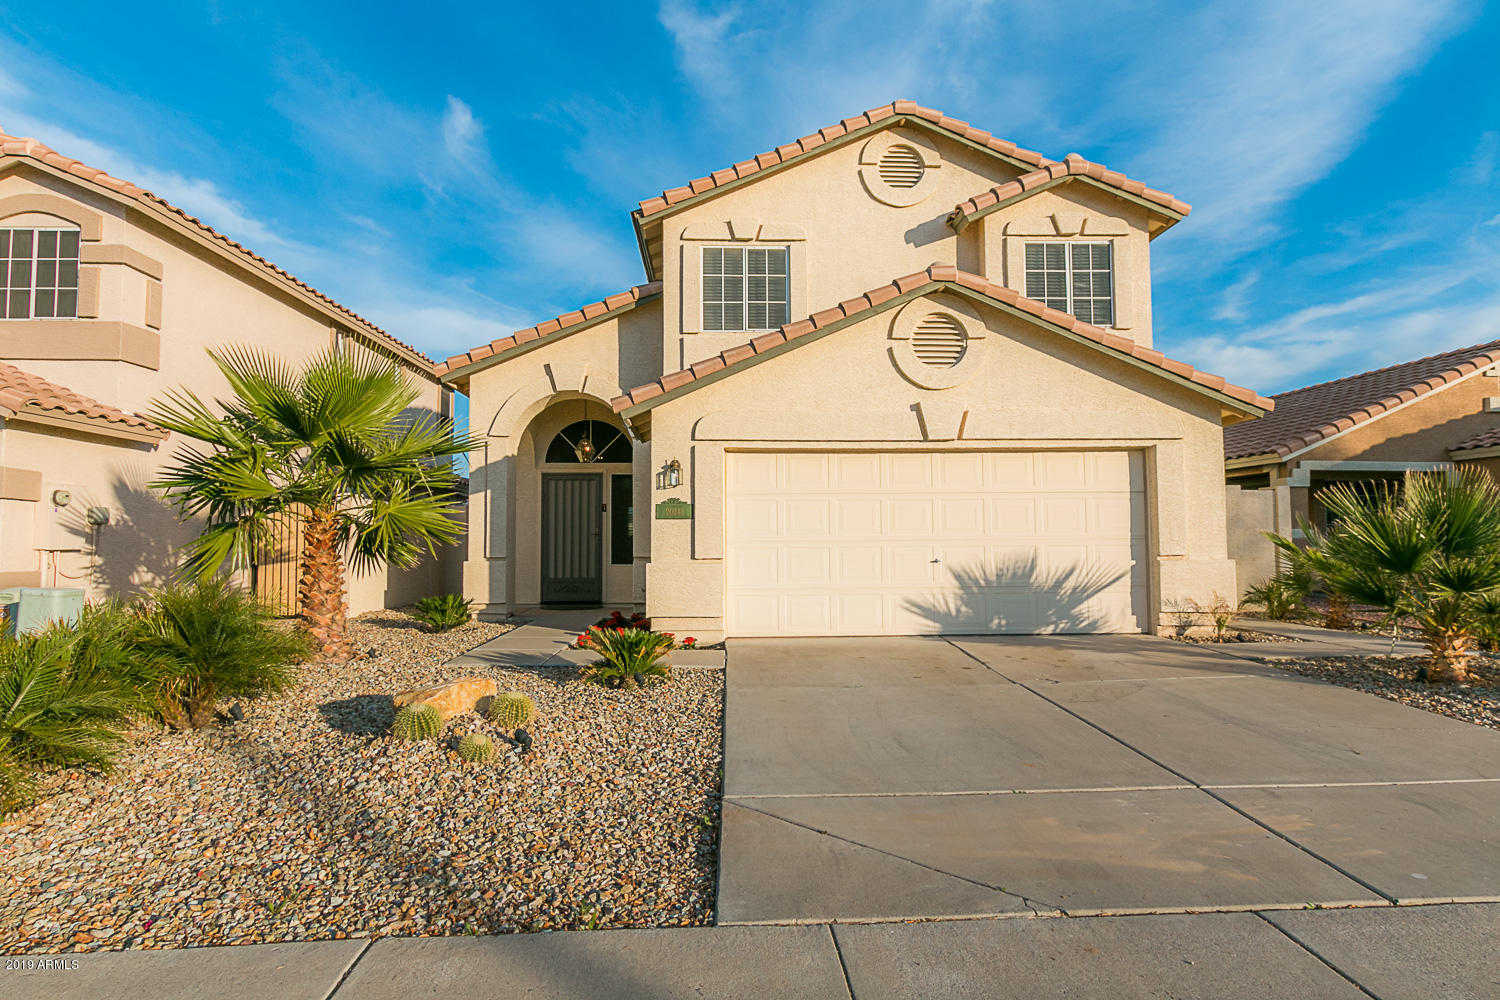 $367,000 - 3Br/3Ba - Home for Sale in Arrowhead Lakes 2 Replat Lt 205-238 Tr A, Glendale